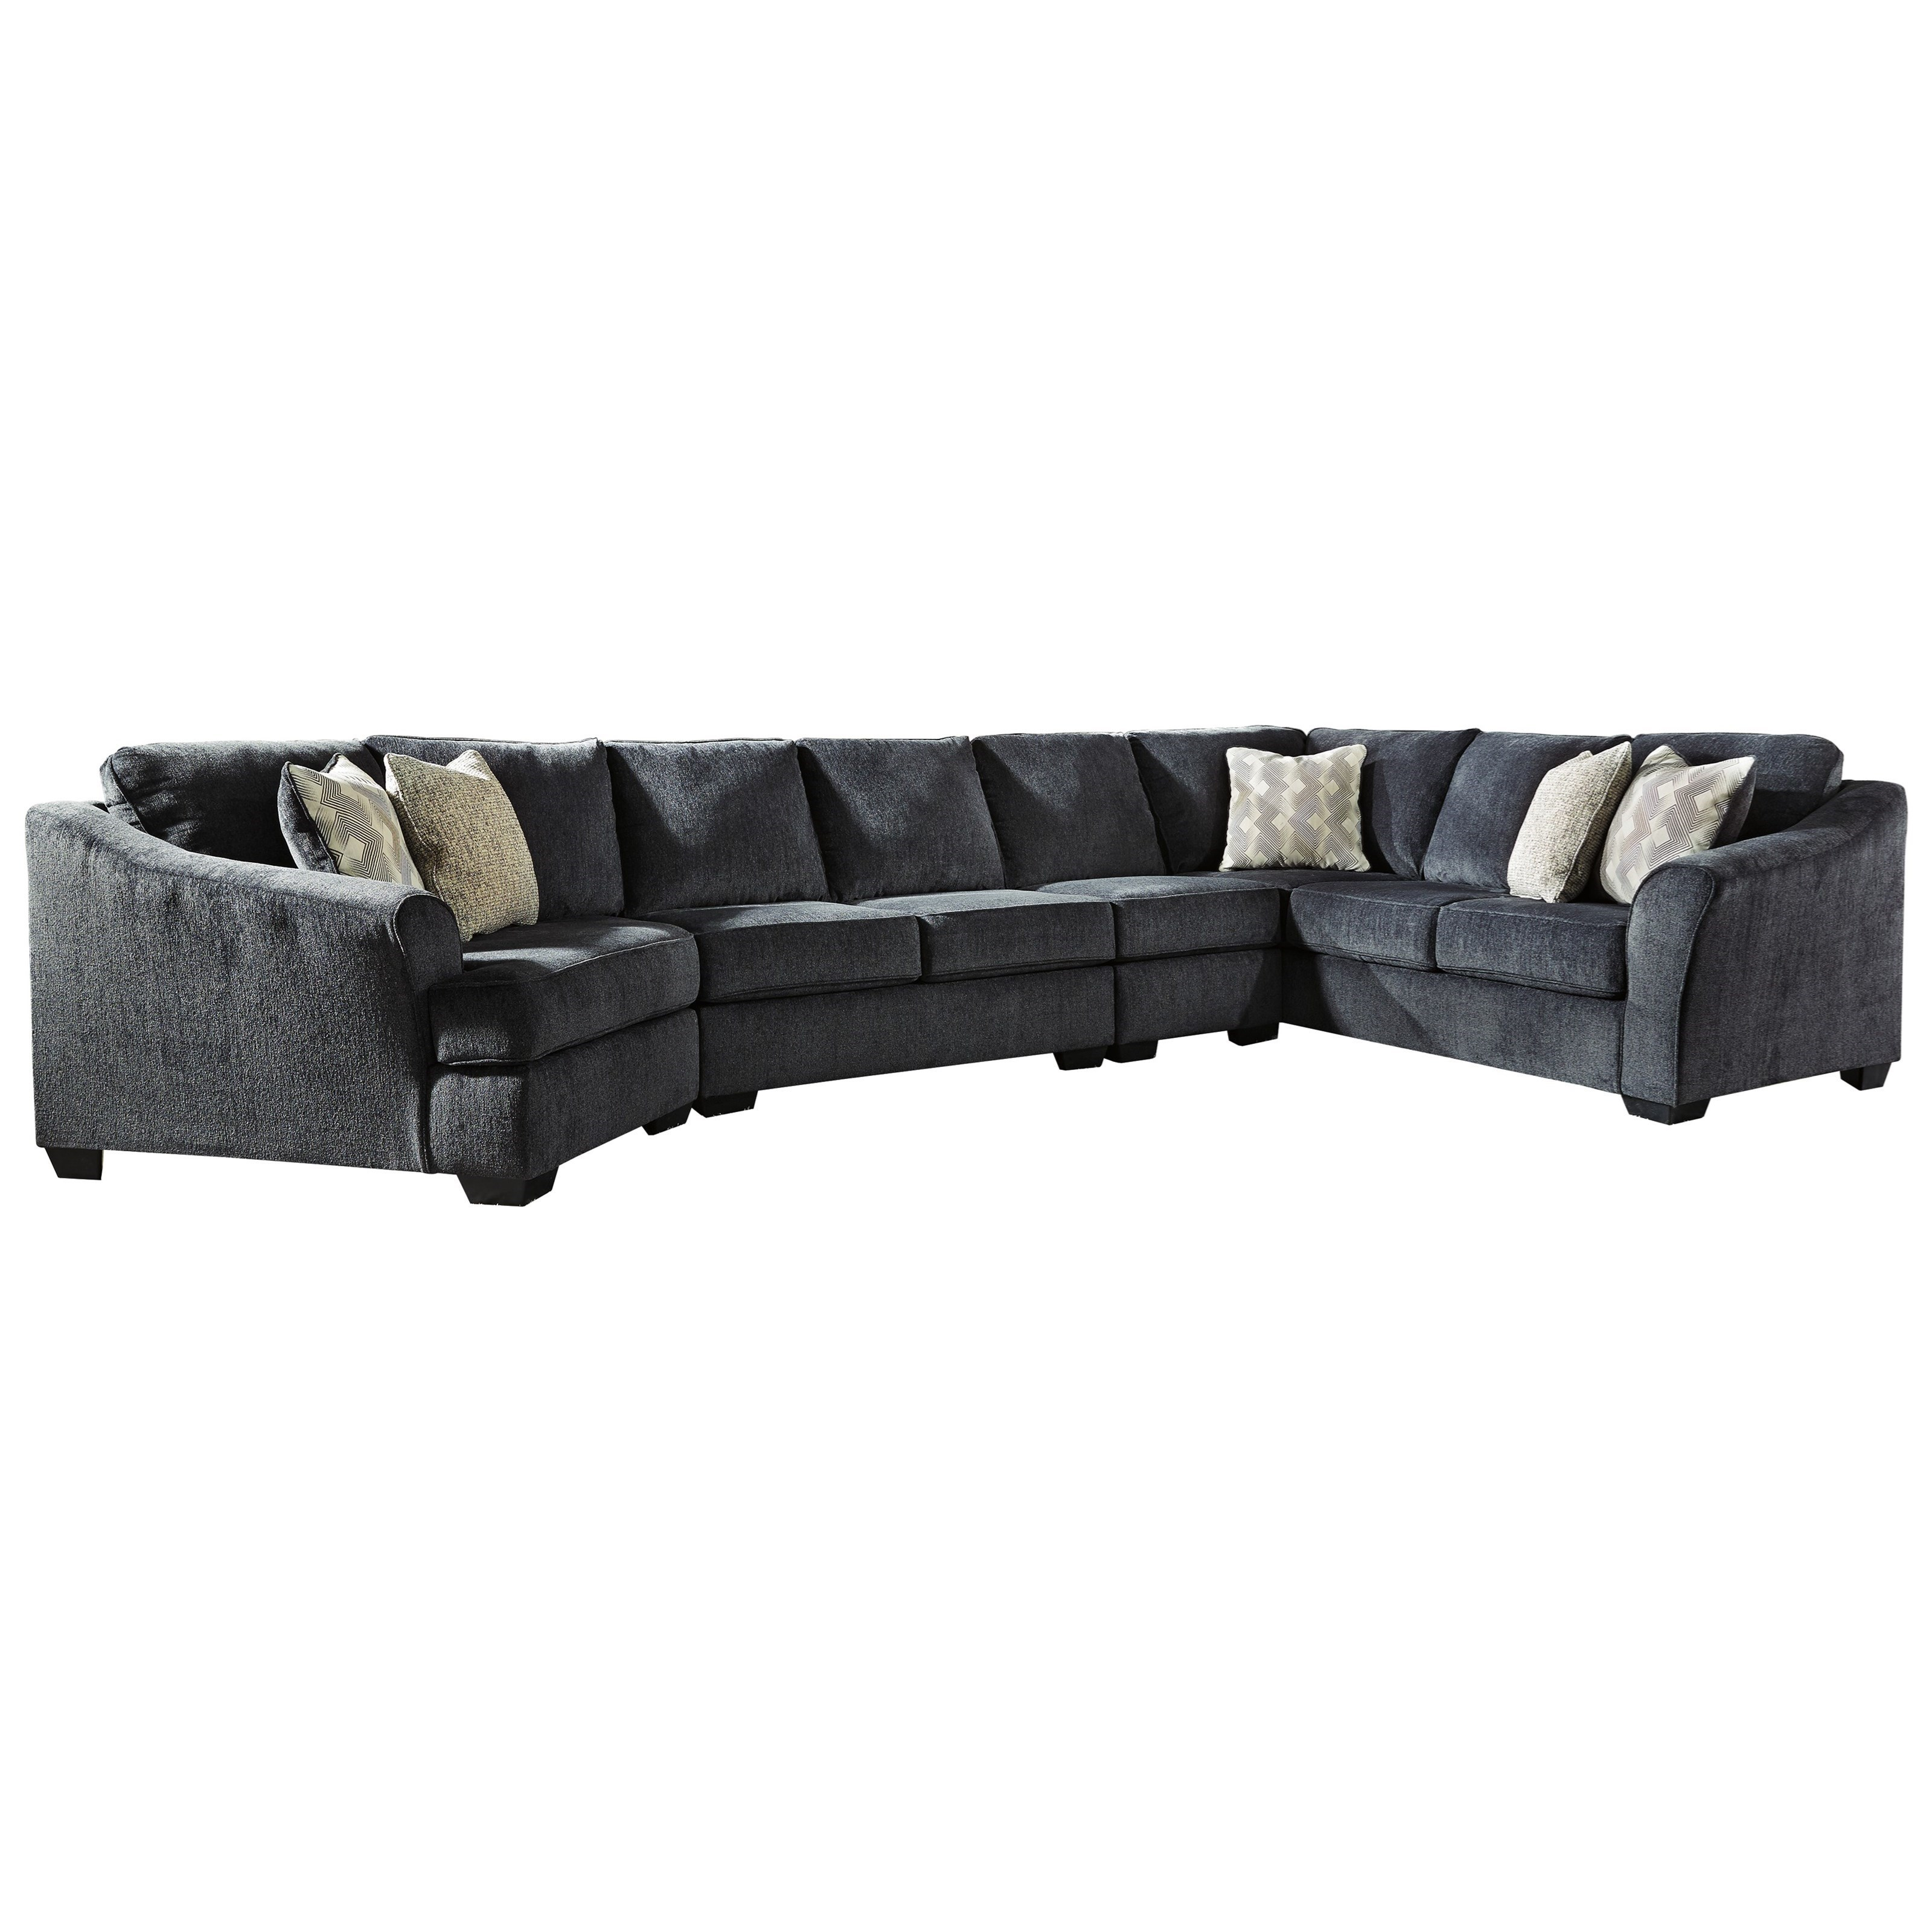 Eltmann 4-Piece Sectional with Left Cuddler by Signature at Walker's Furniture